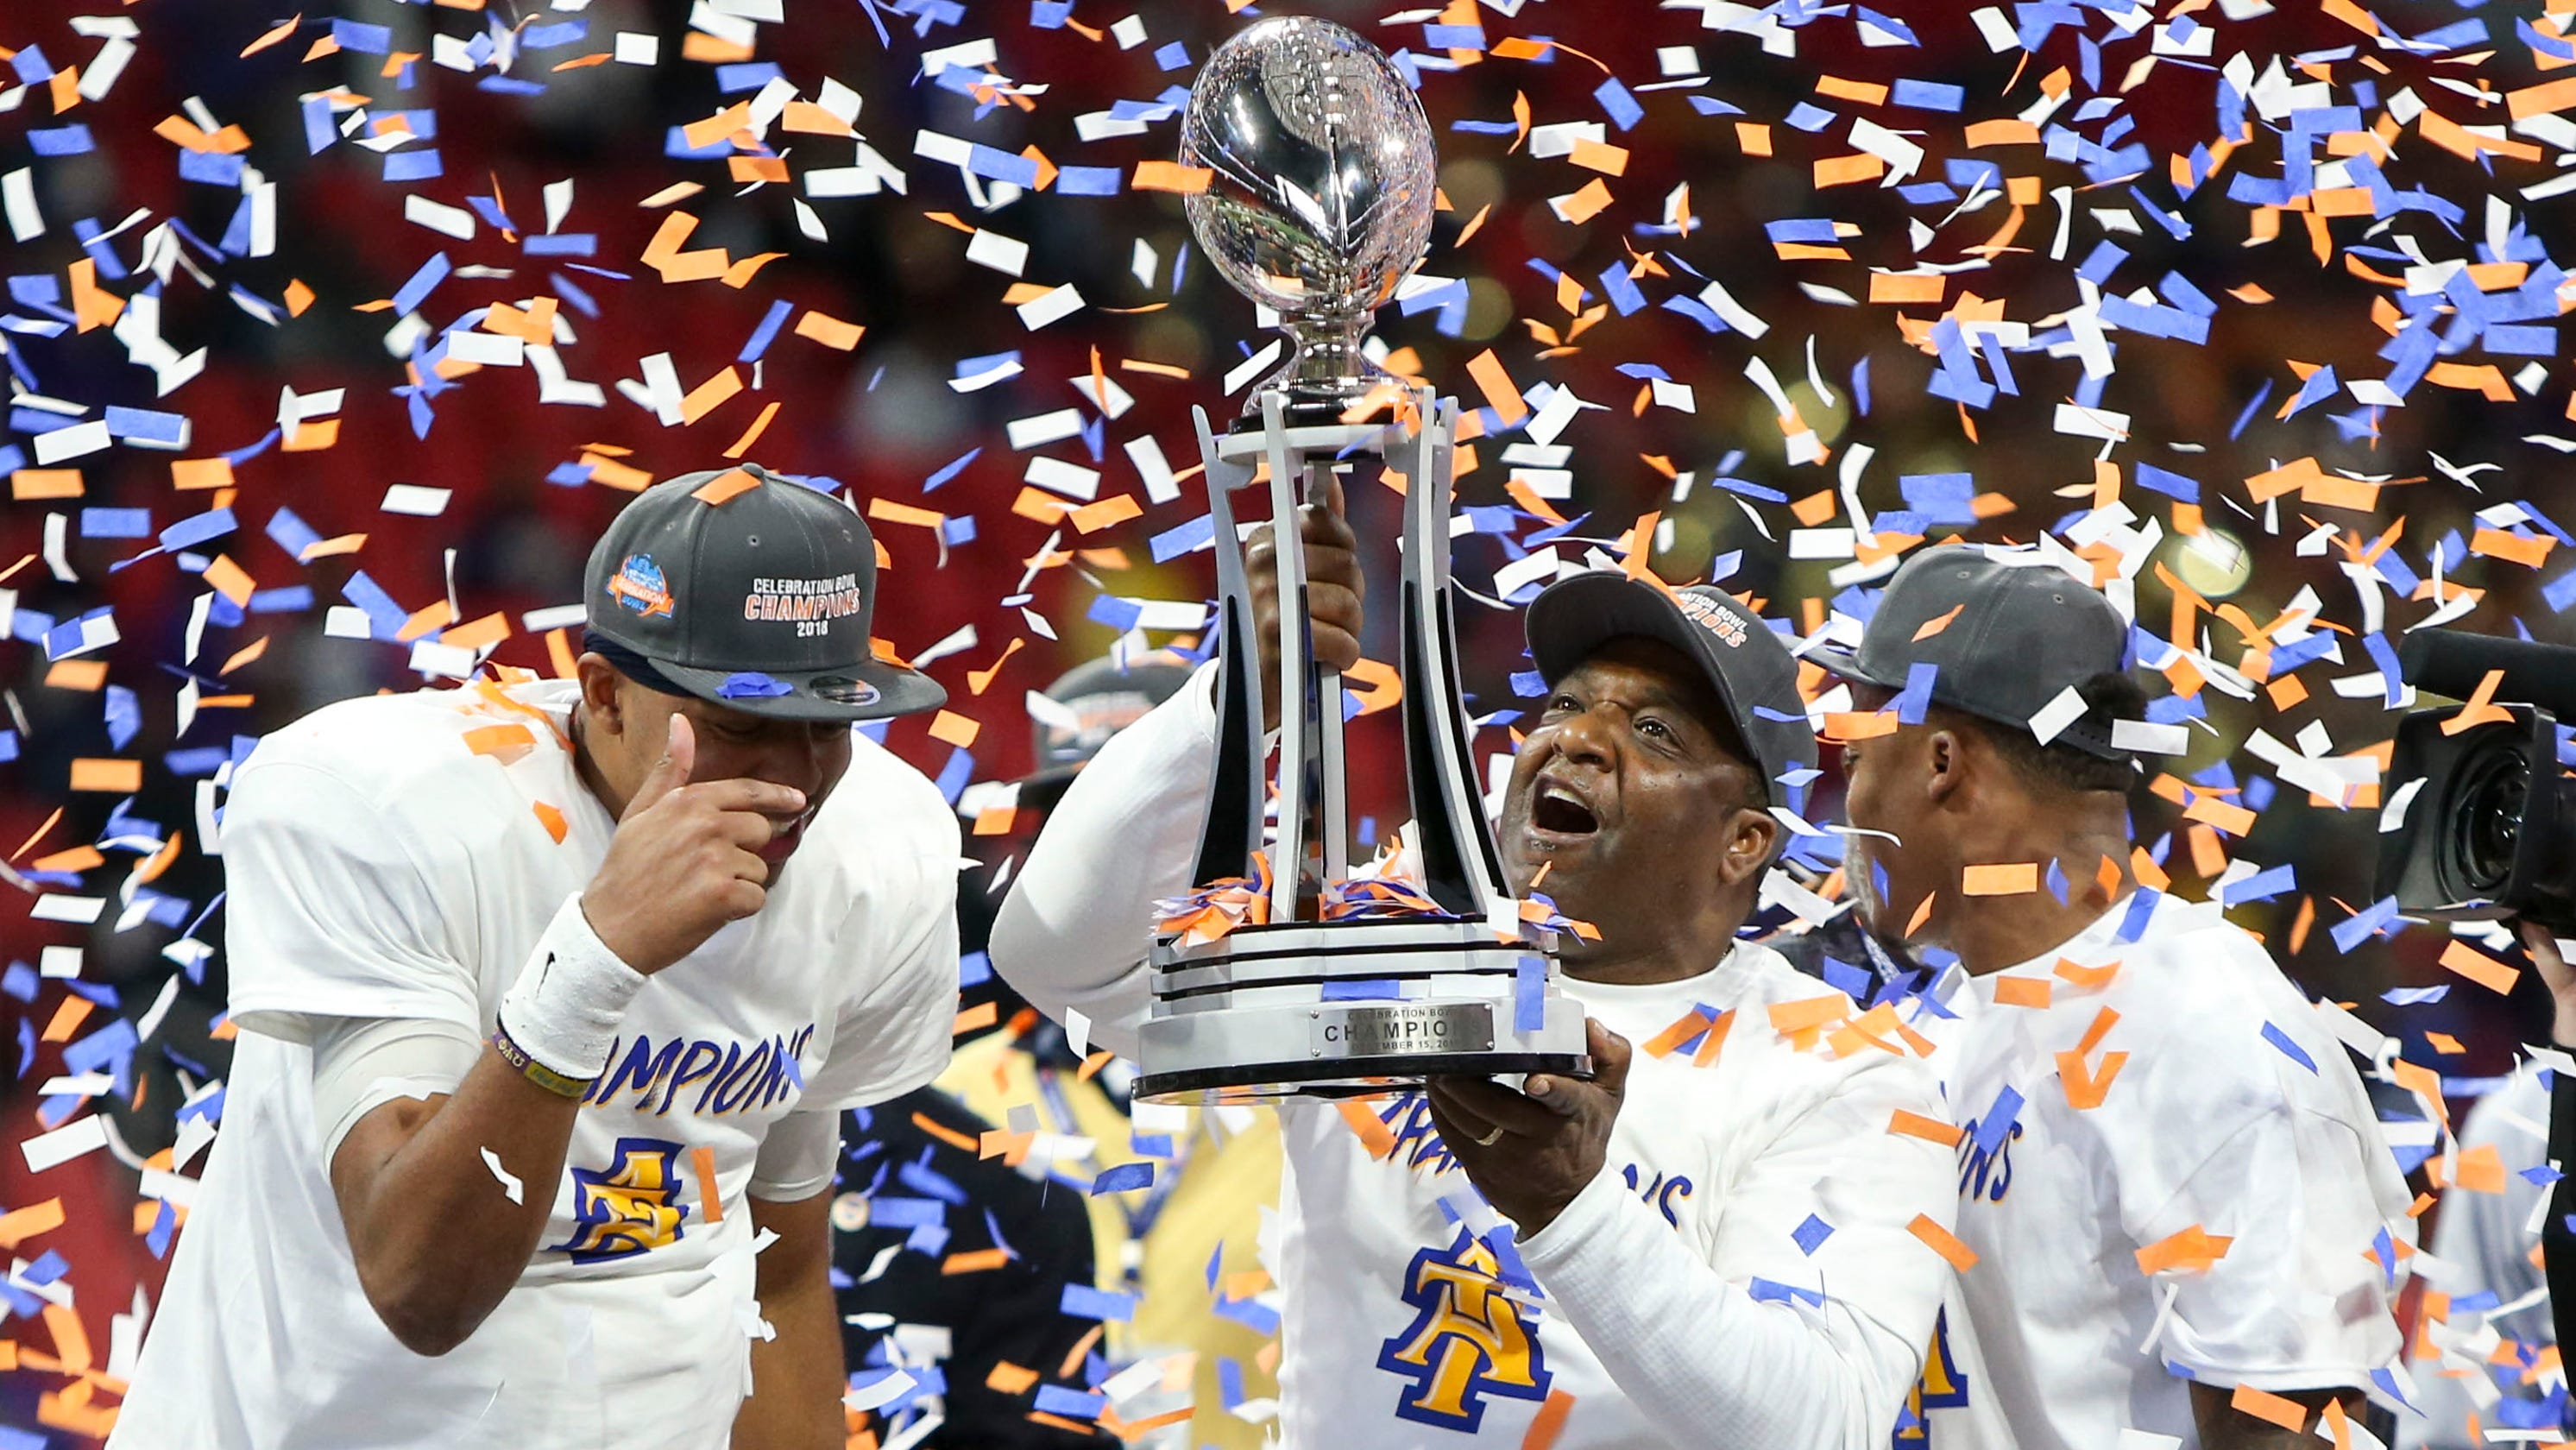 Image result for hbcu football players 2019 sitting on sideline